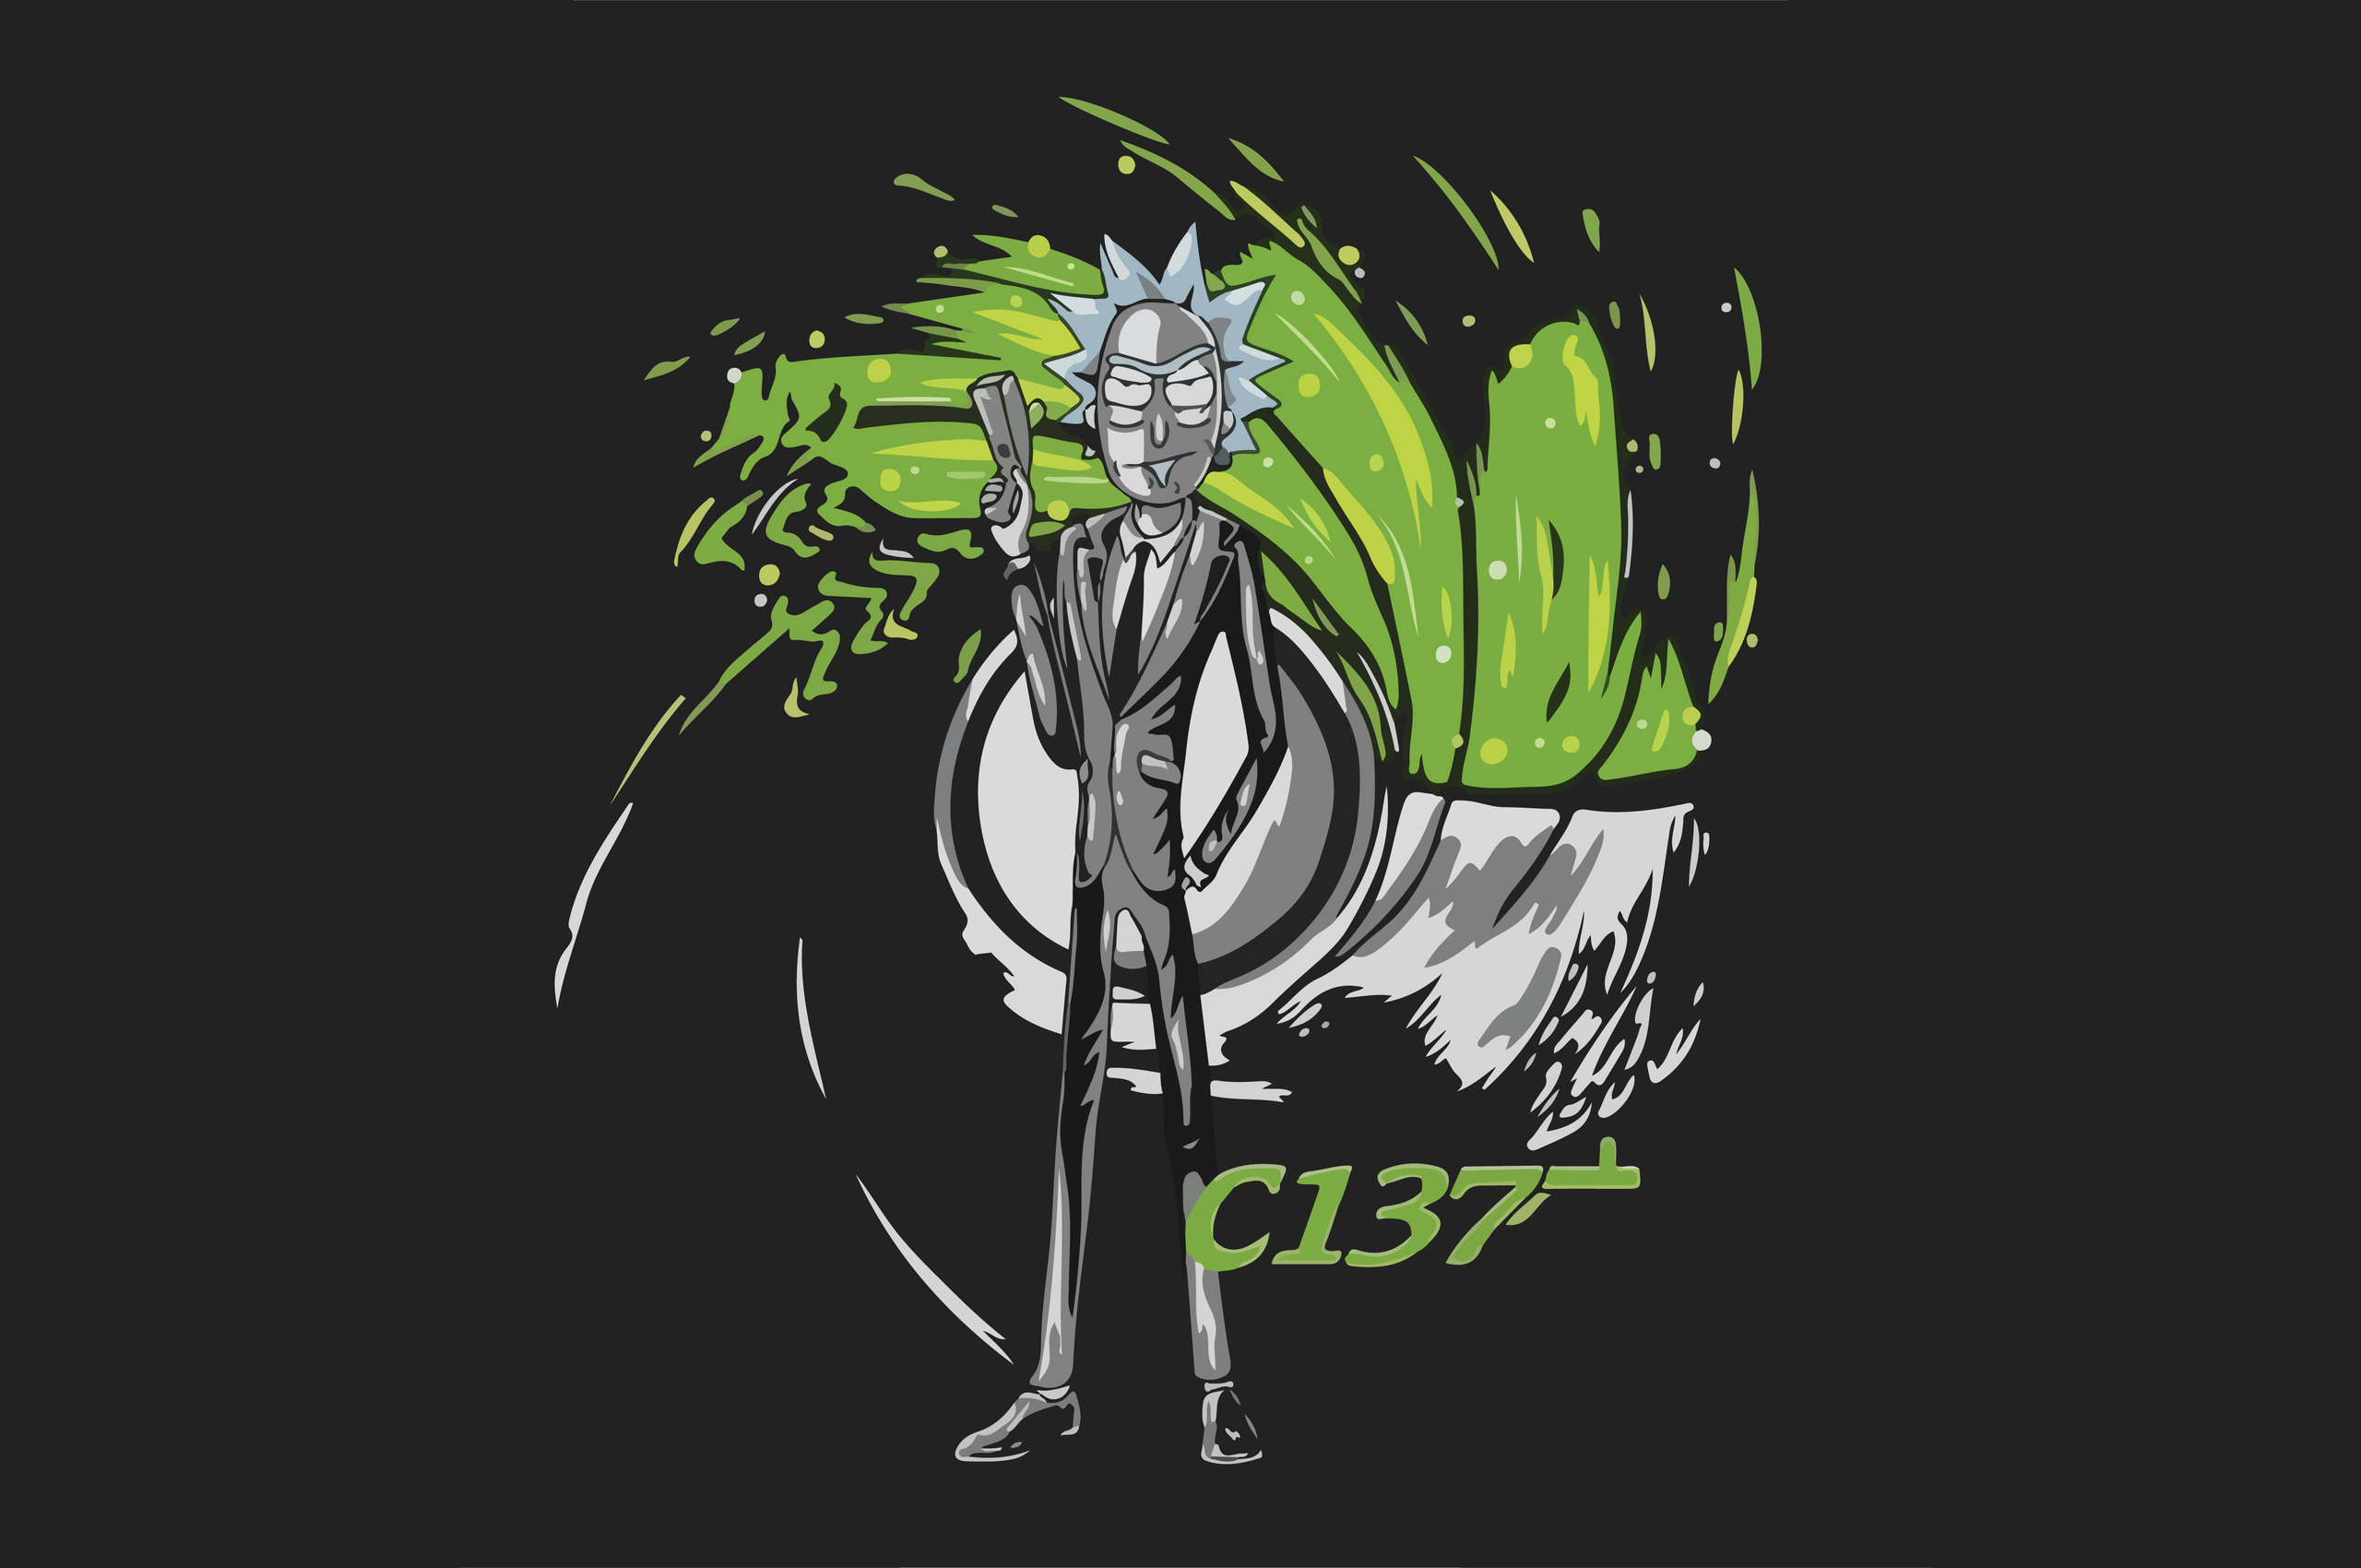 rick-sanchez-as-james-bond-artwork-x1.jpg